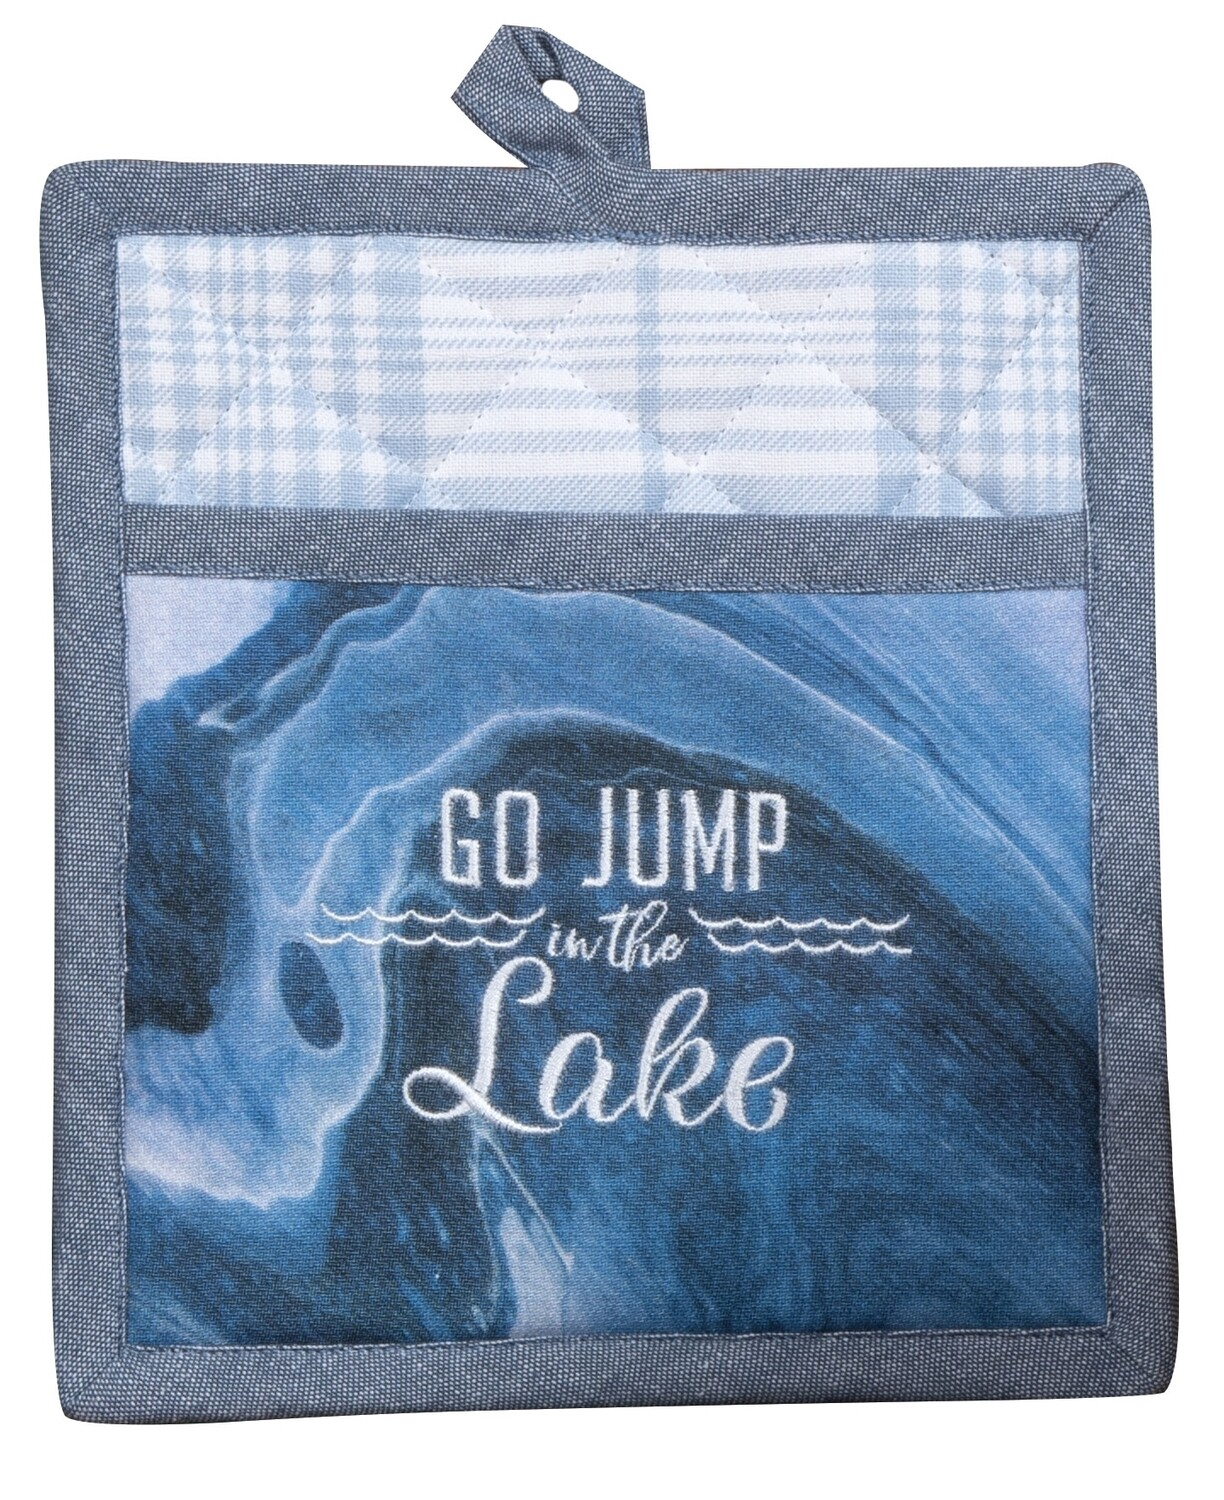 Tranquility Lake Pocket Mitt | Go Jump in the Lake